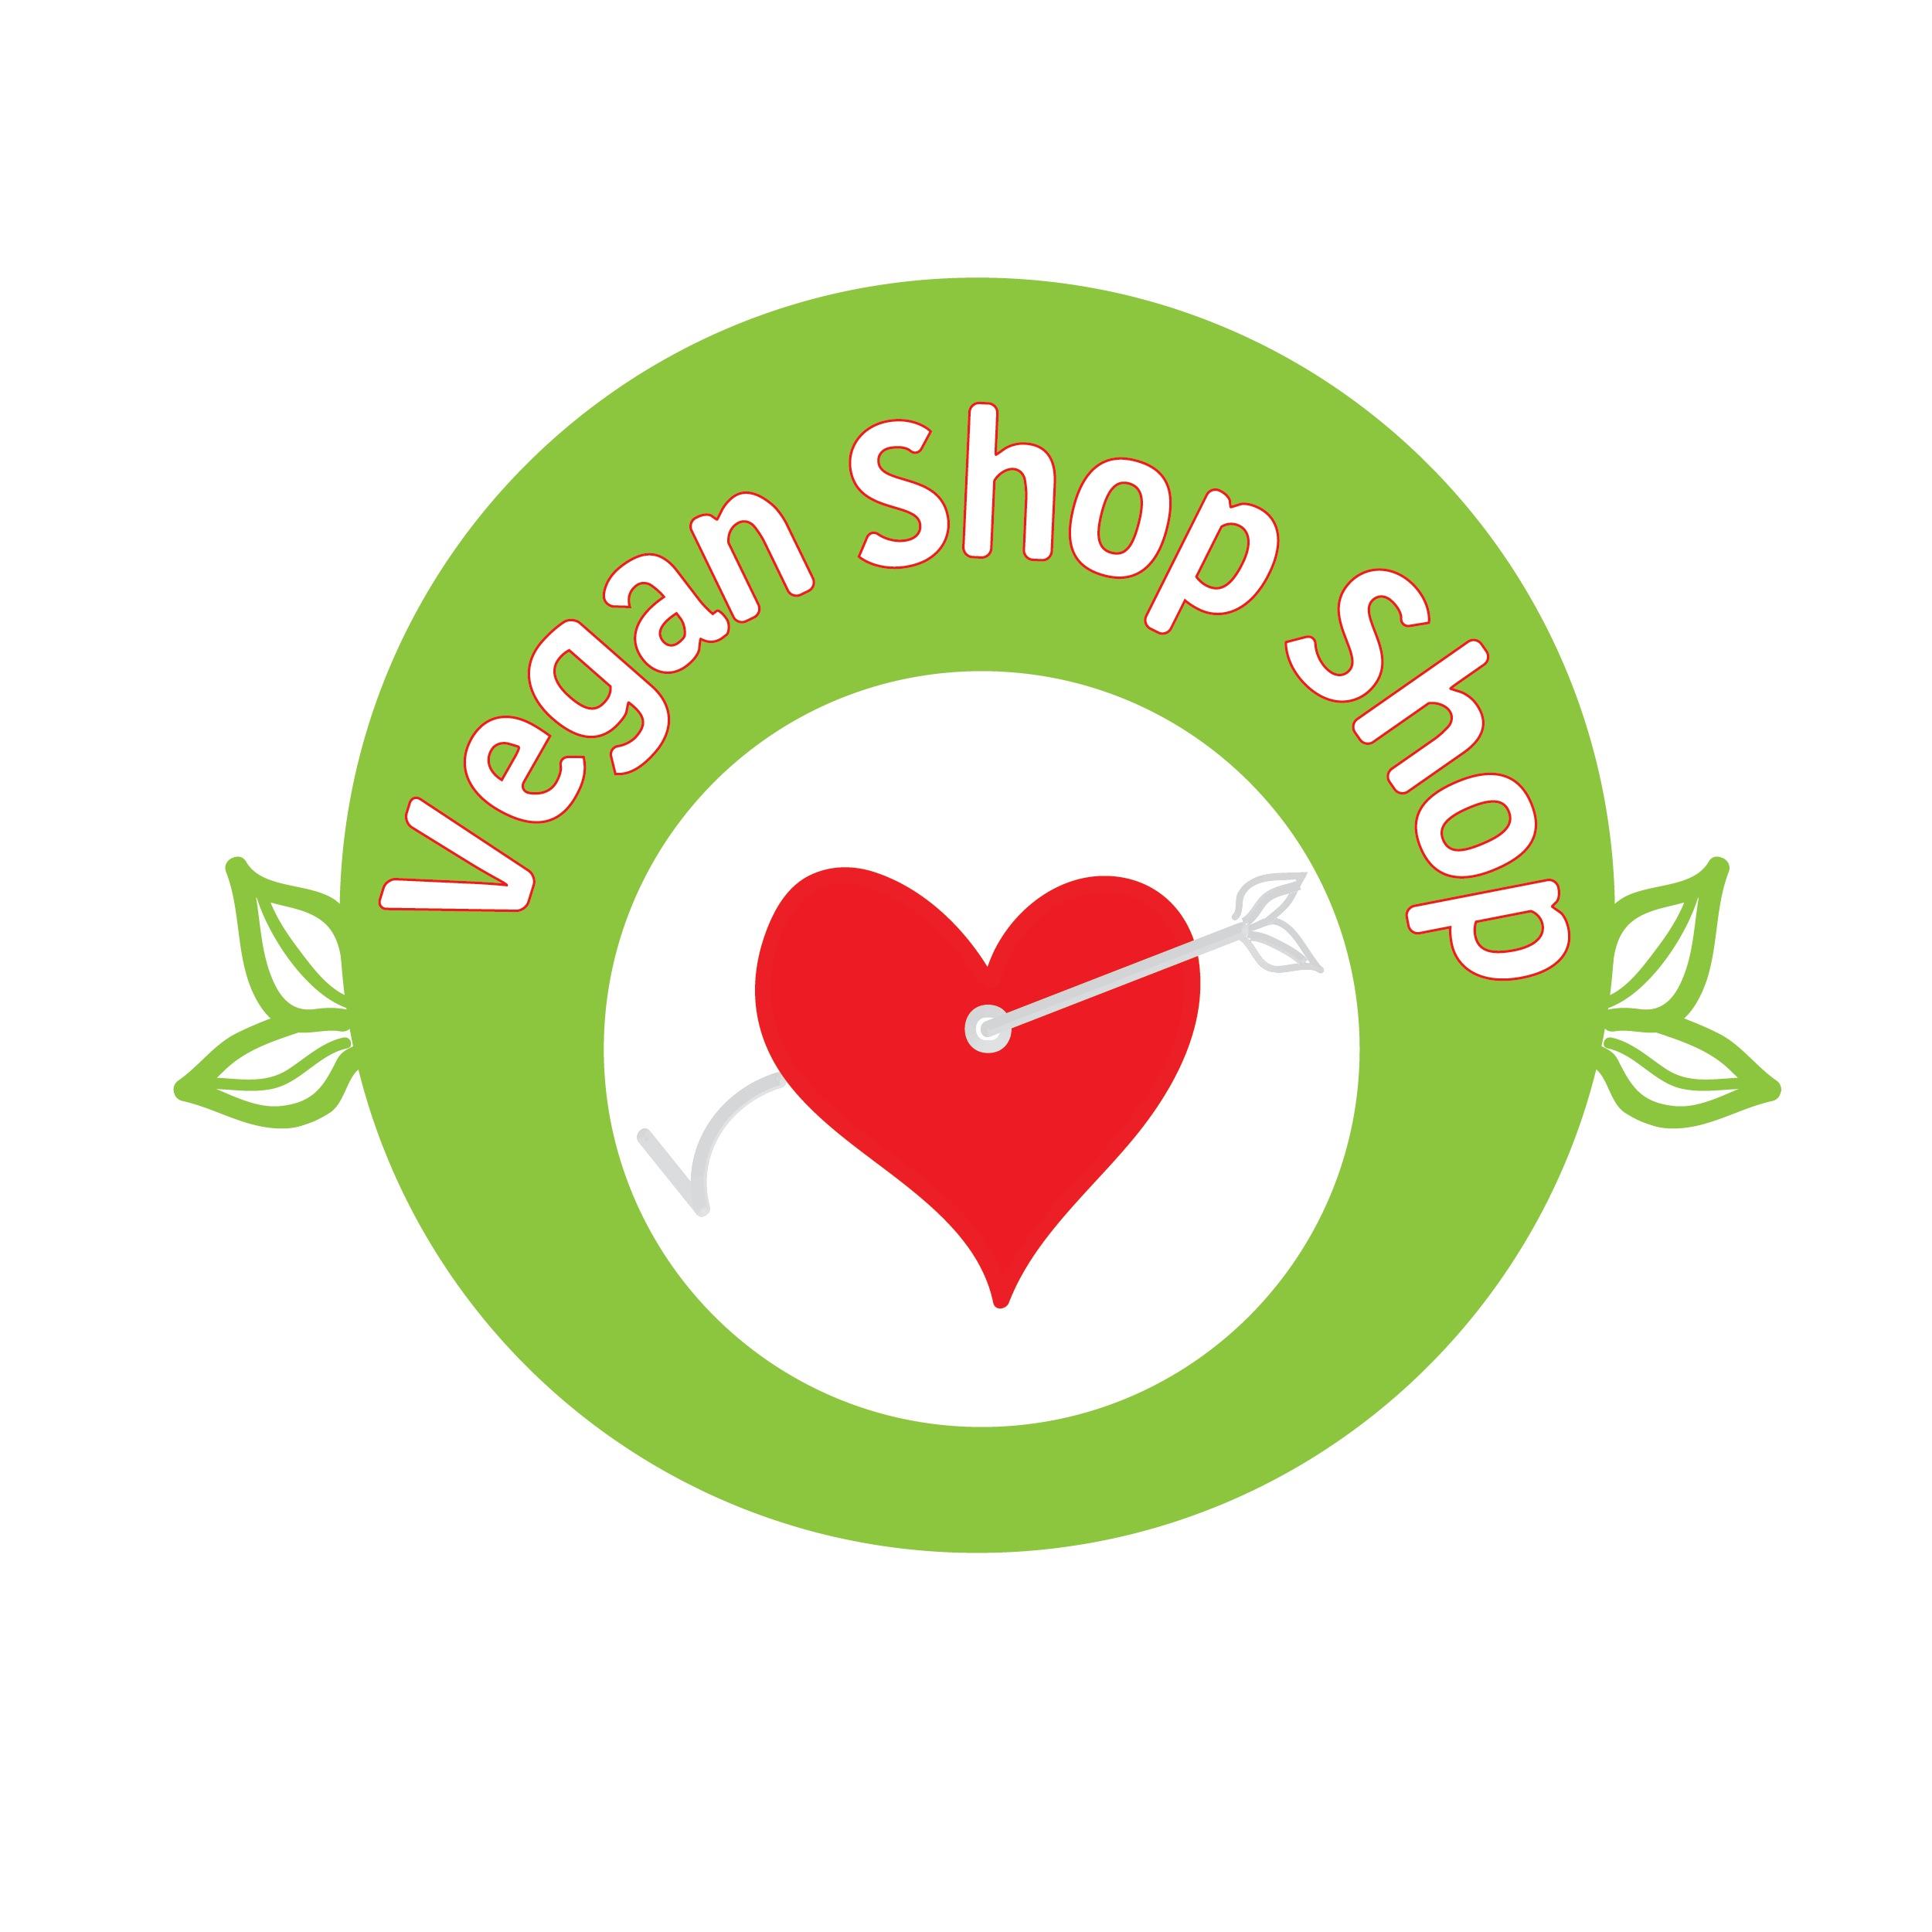 Vegan Shop Shop